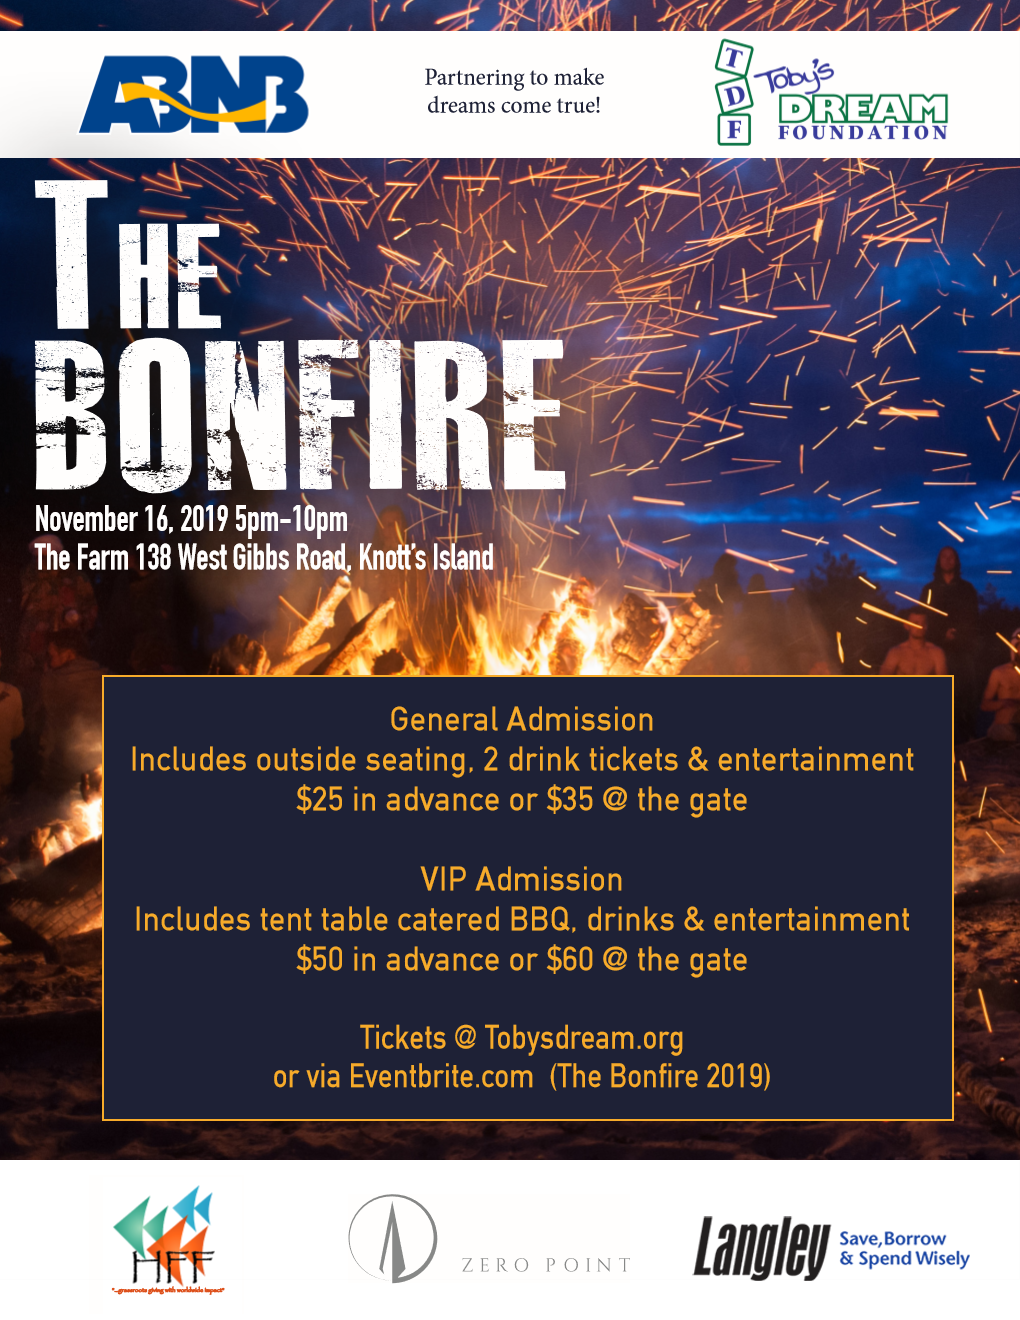 The Bonfire 2019